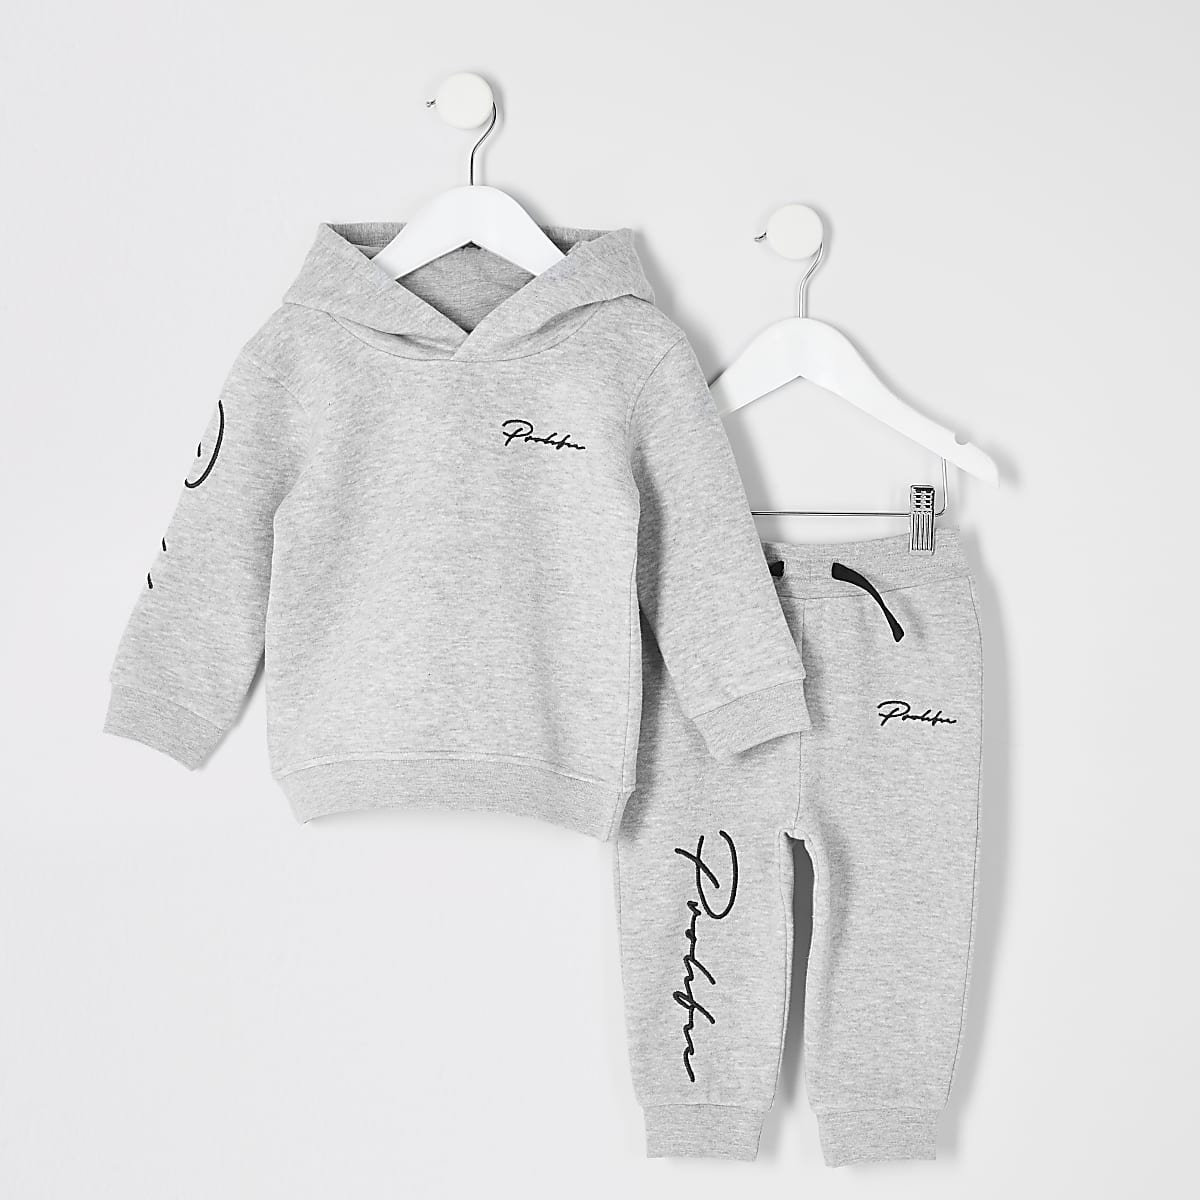 Mini boys grey 'Prolific' hoodie outfit